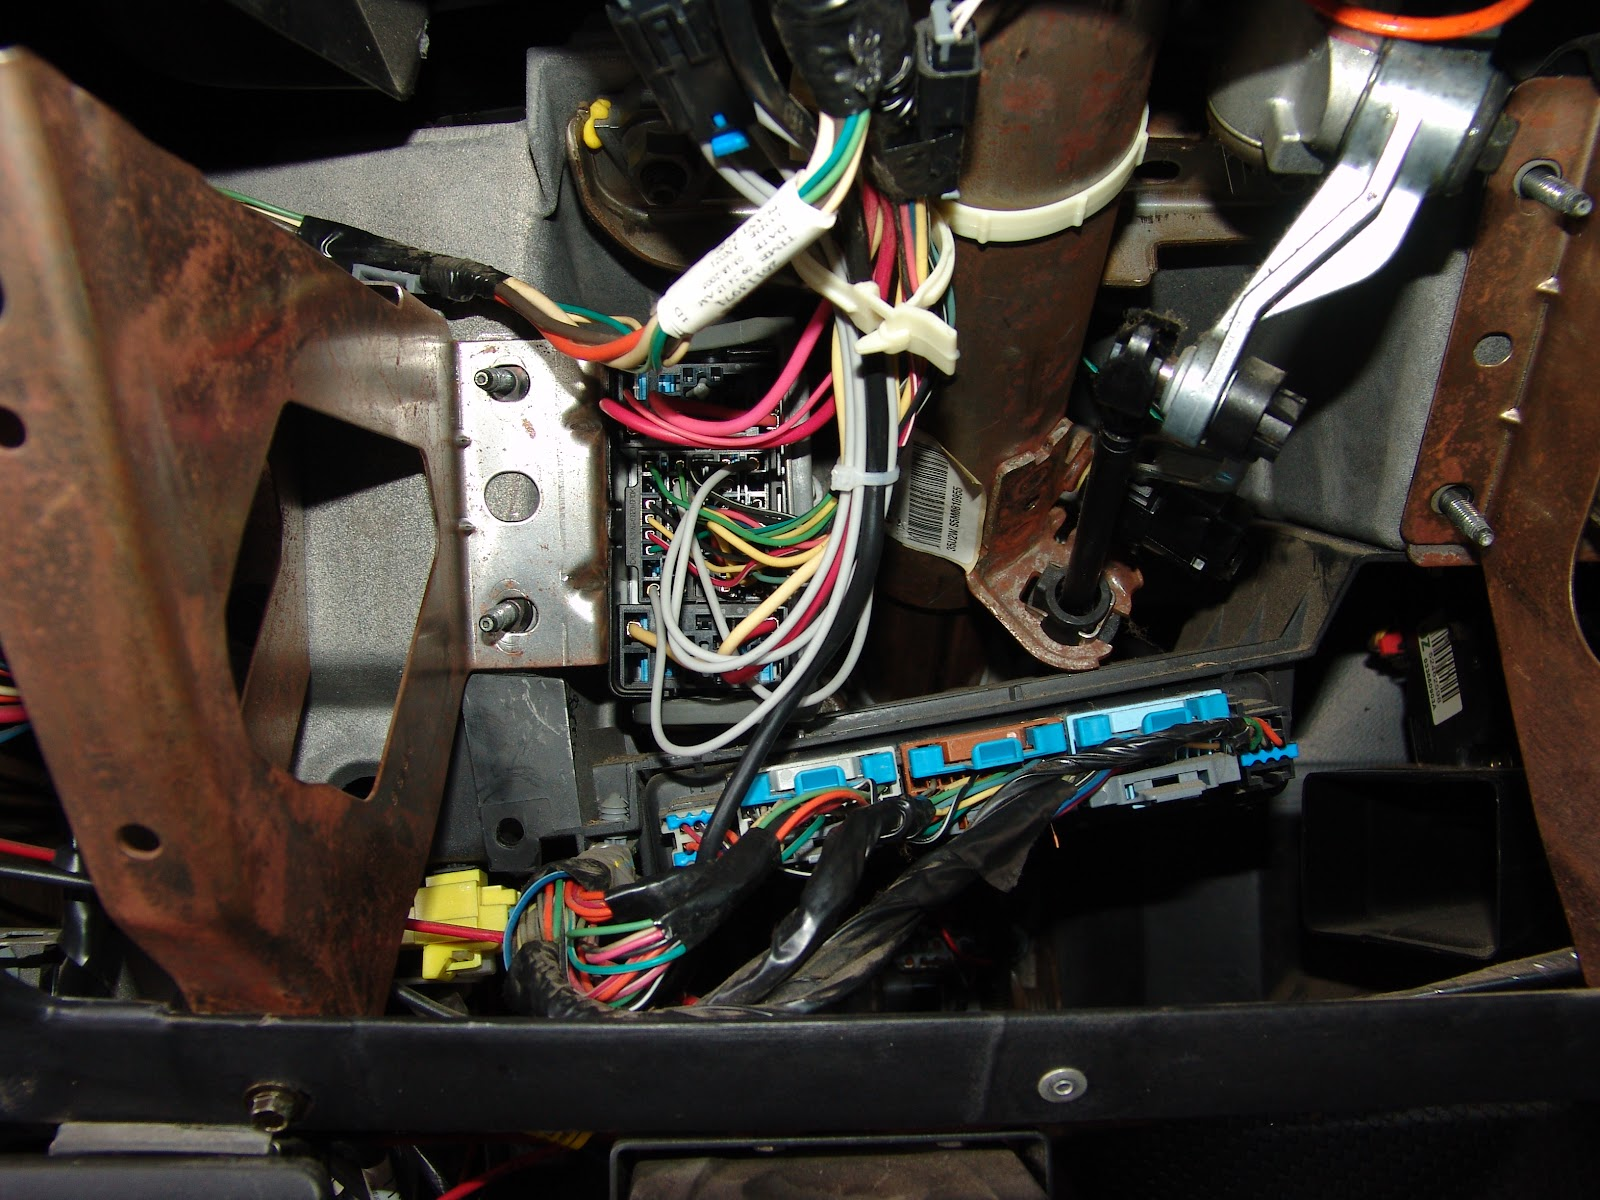 1988 Honda Accord Fuel Pump Wiring Diagram Bpt Door Entry Ford Ranger Relay Location Get Free Image